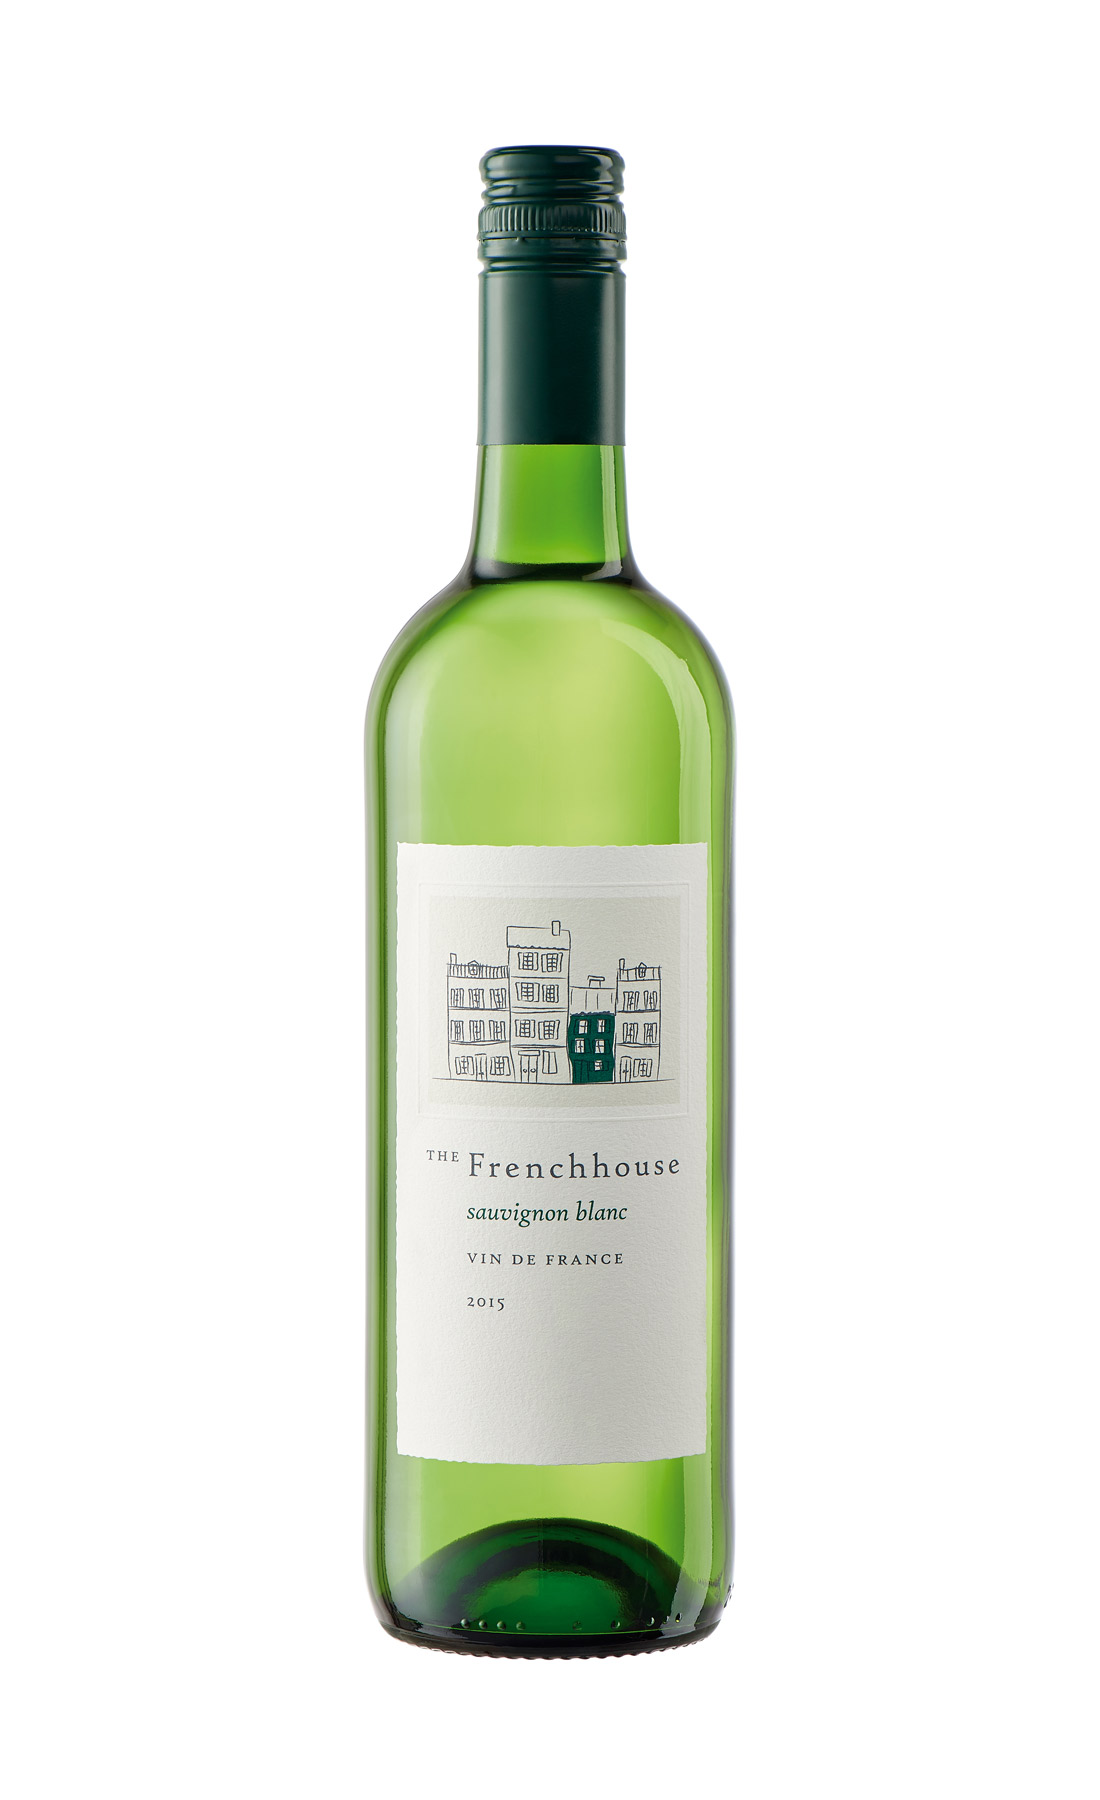 The Frenchhouse Sauvignon Blanc